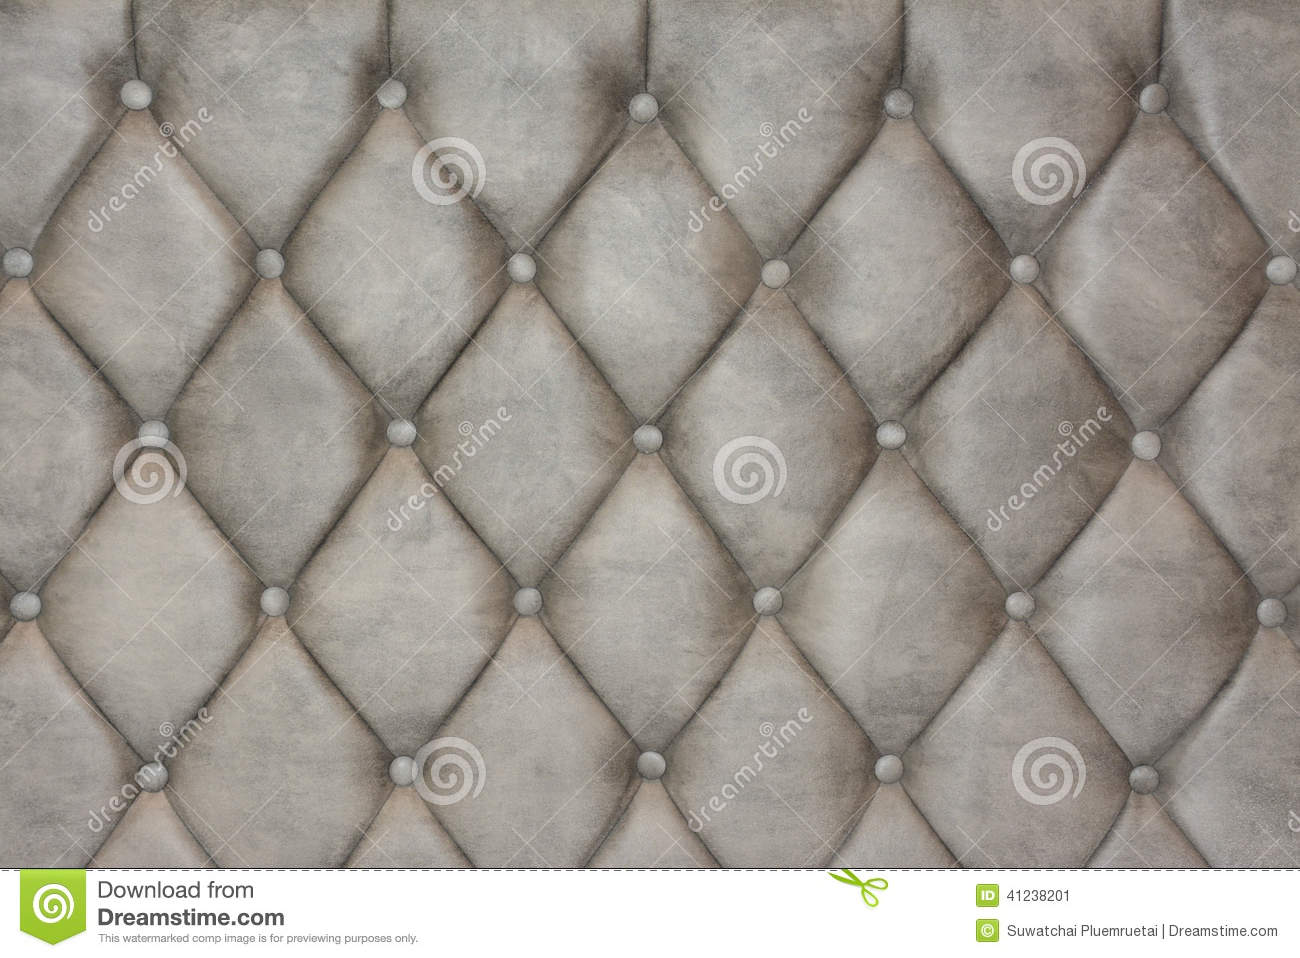 Leather cushion texture - Leather Cushion Texture Leather Cushion Texture Leather Texture Furniture